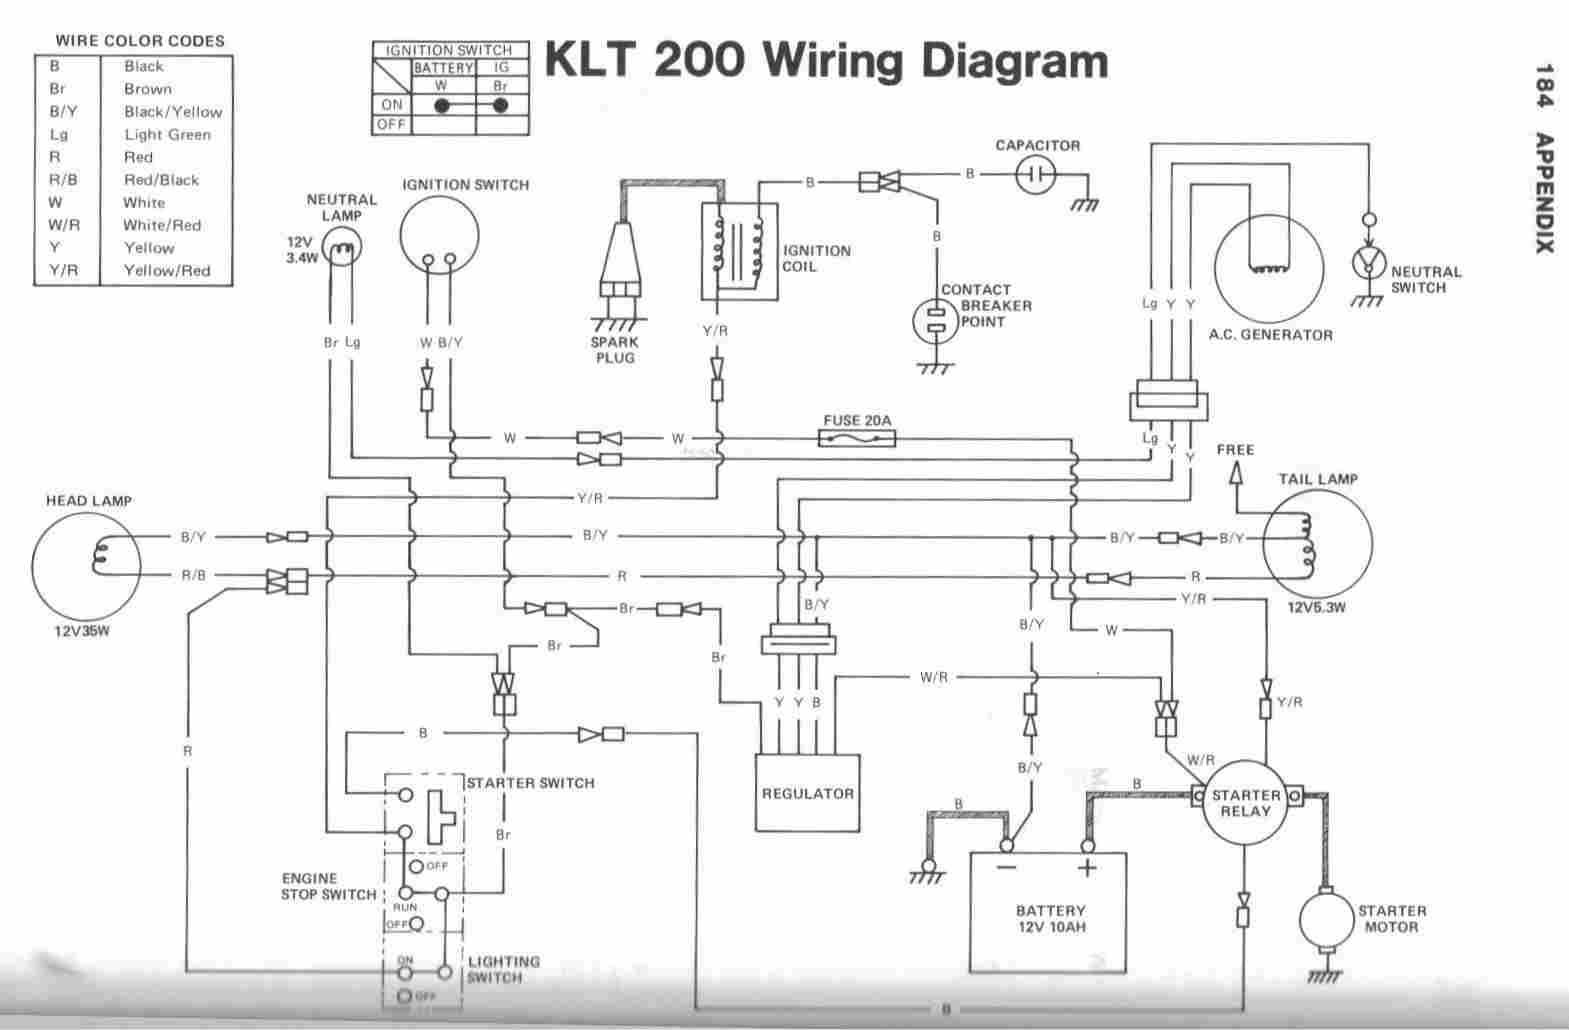 1995 kawasaki bayou 300 wiring diagram john deere 140 residential electrical diagrams pdf easy routing | cool ideas pinterest ...